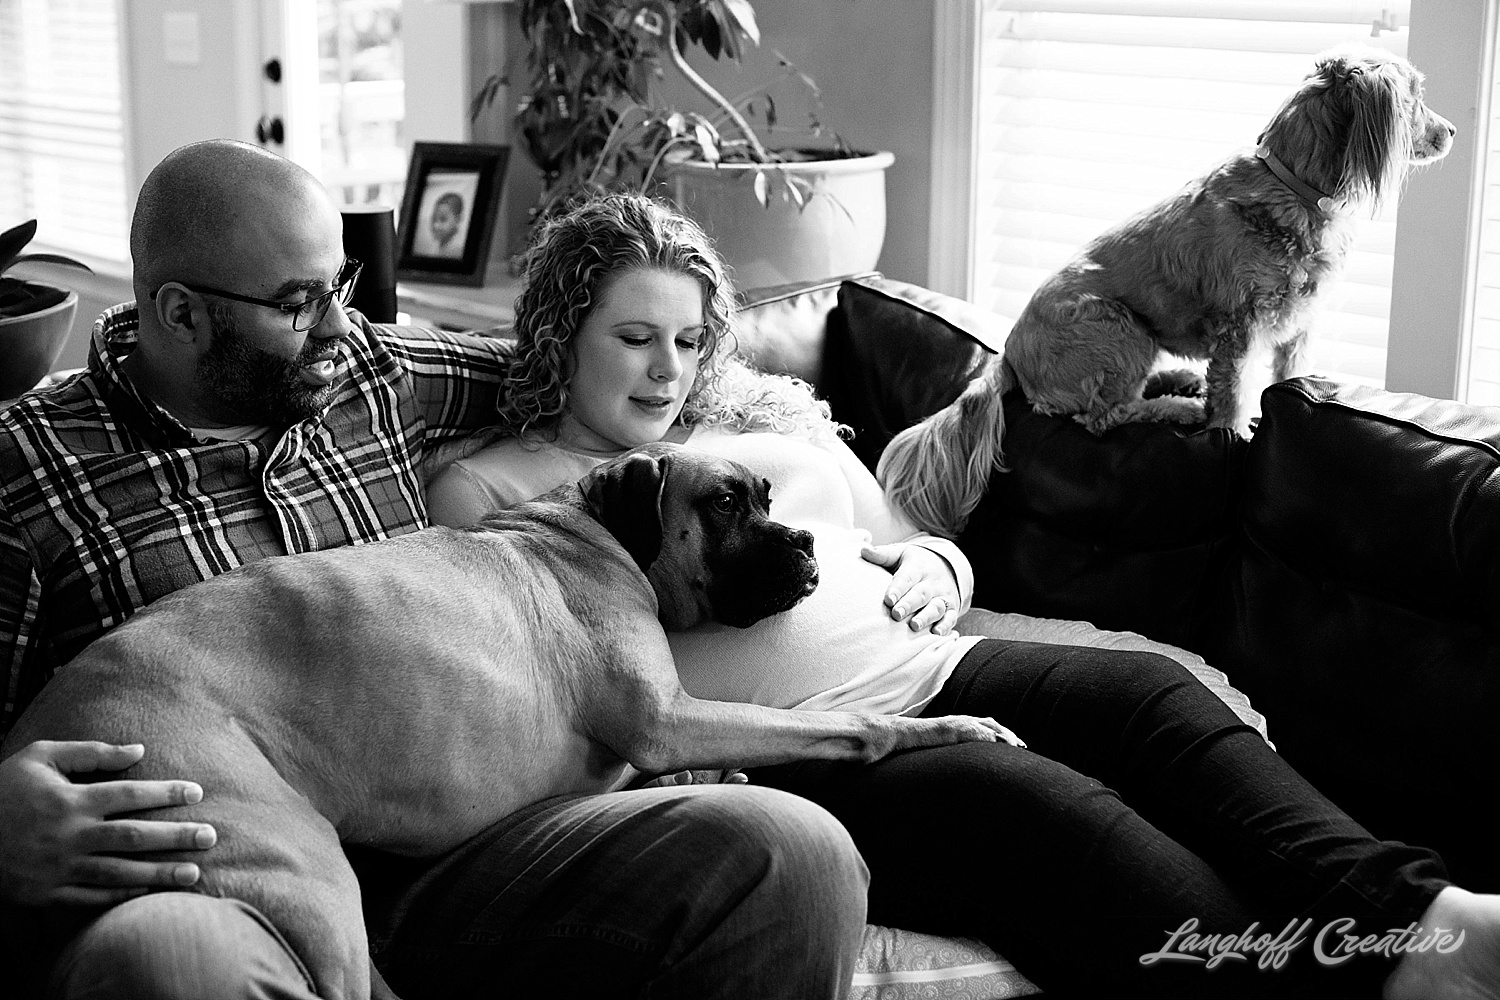 2018-Gambino-MaternitySession-DocumentaryFamilyPhotography-LanghoffCreative-DocumentaryPhotographer-RealLifeSession-18.jpg